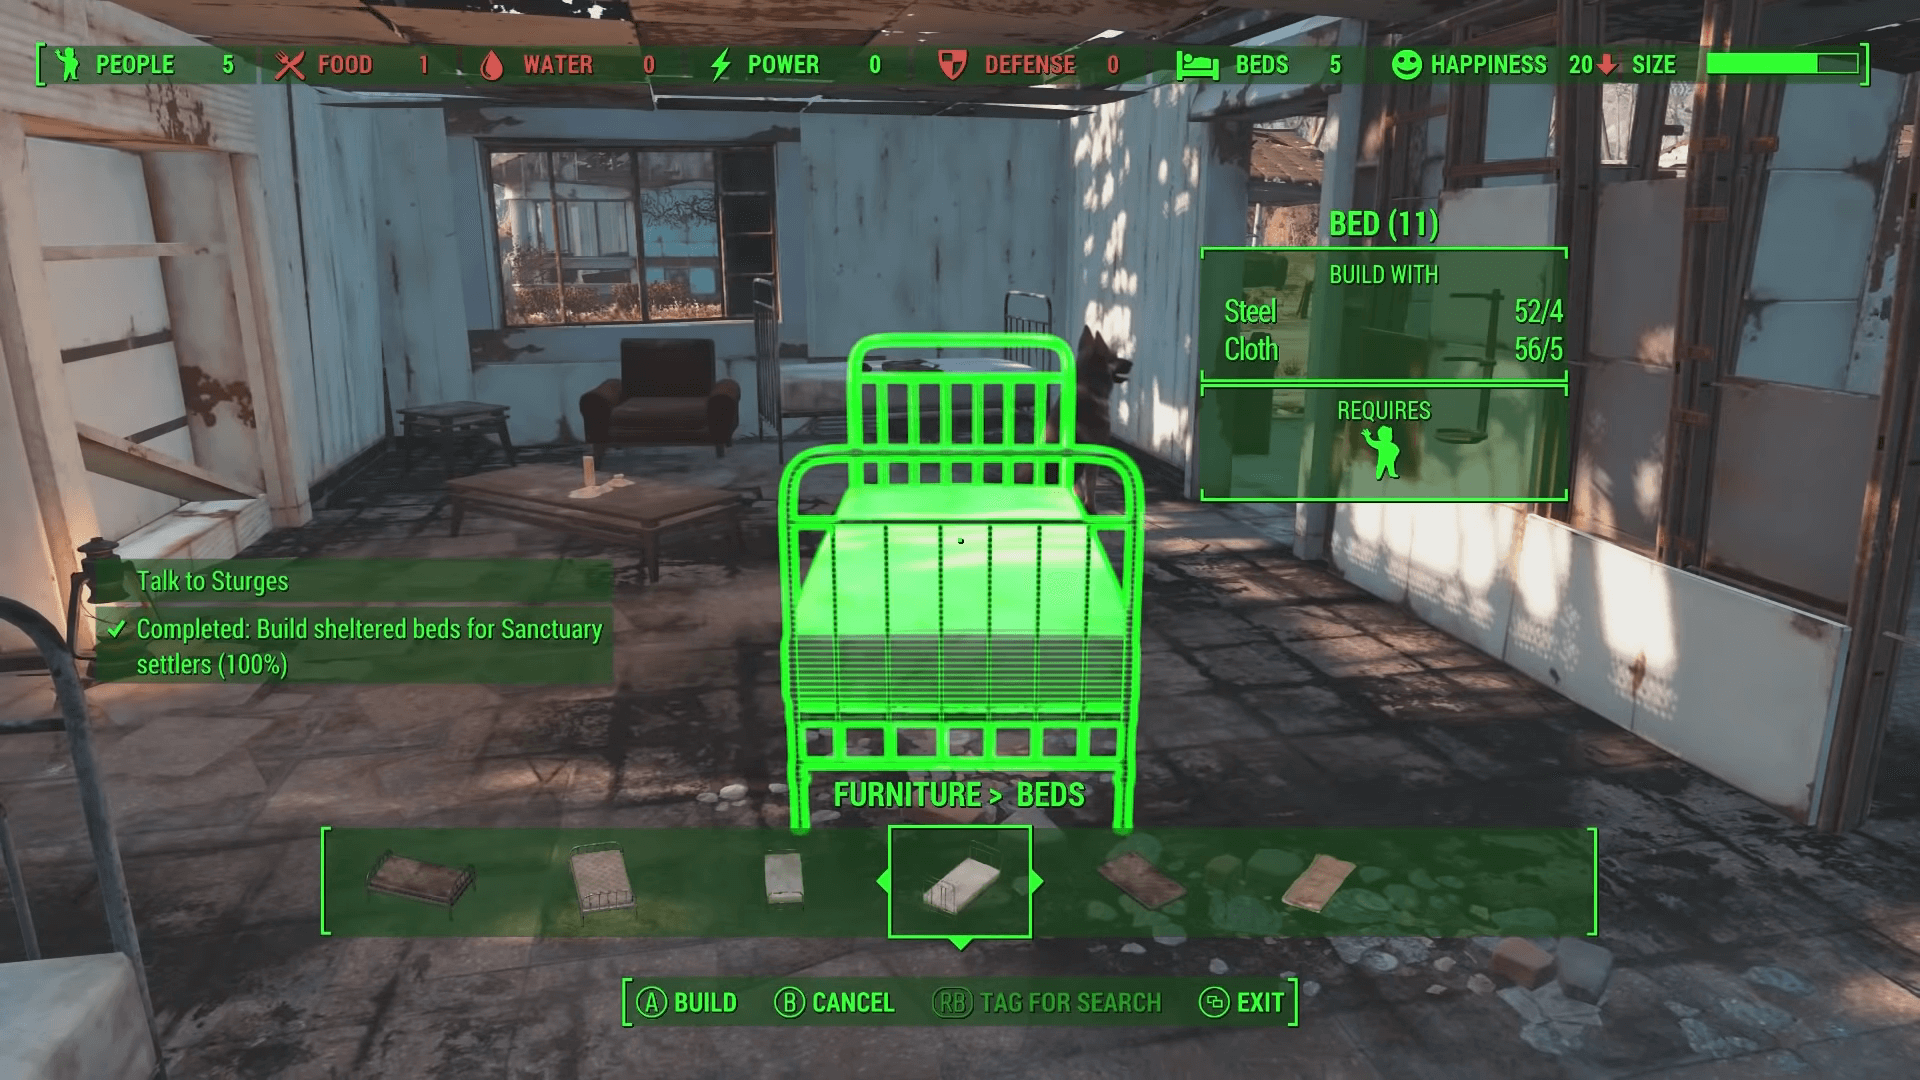 How To Wait In Fallout 4: A Complete Guide